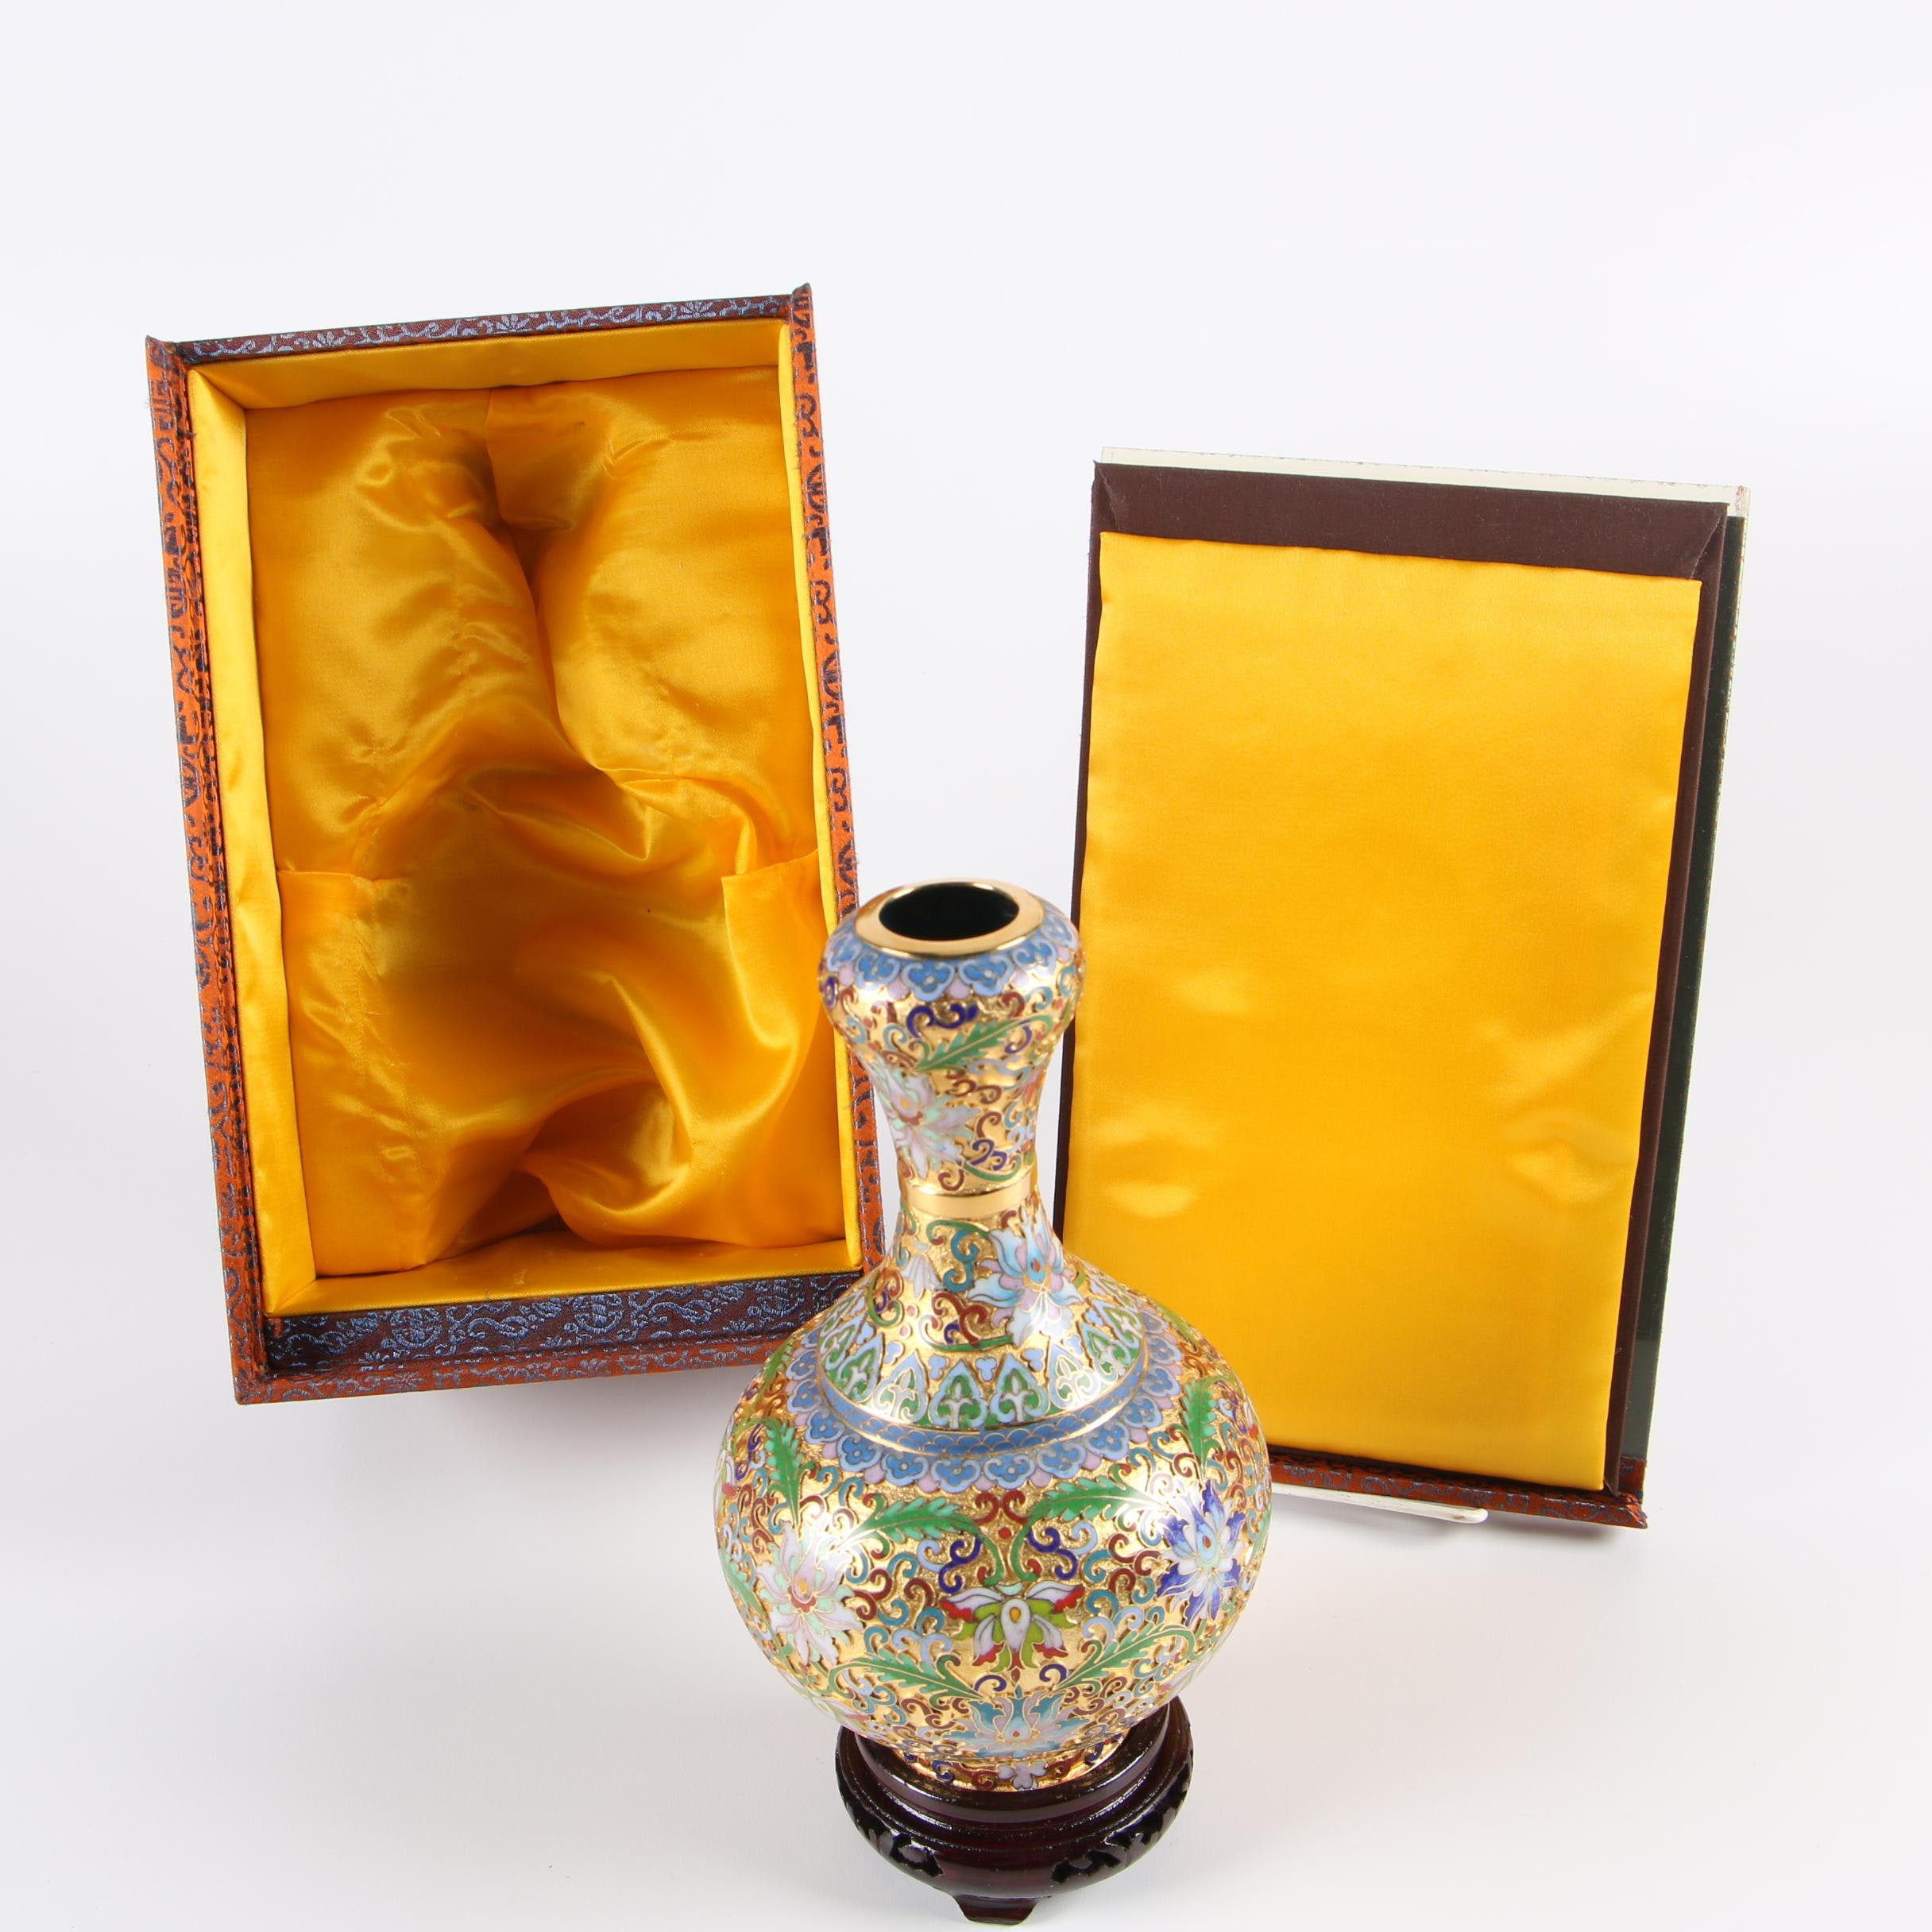 Chinese Champlevé Enameled Vase with Wooden Stand and Decorative Box